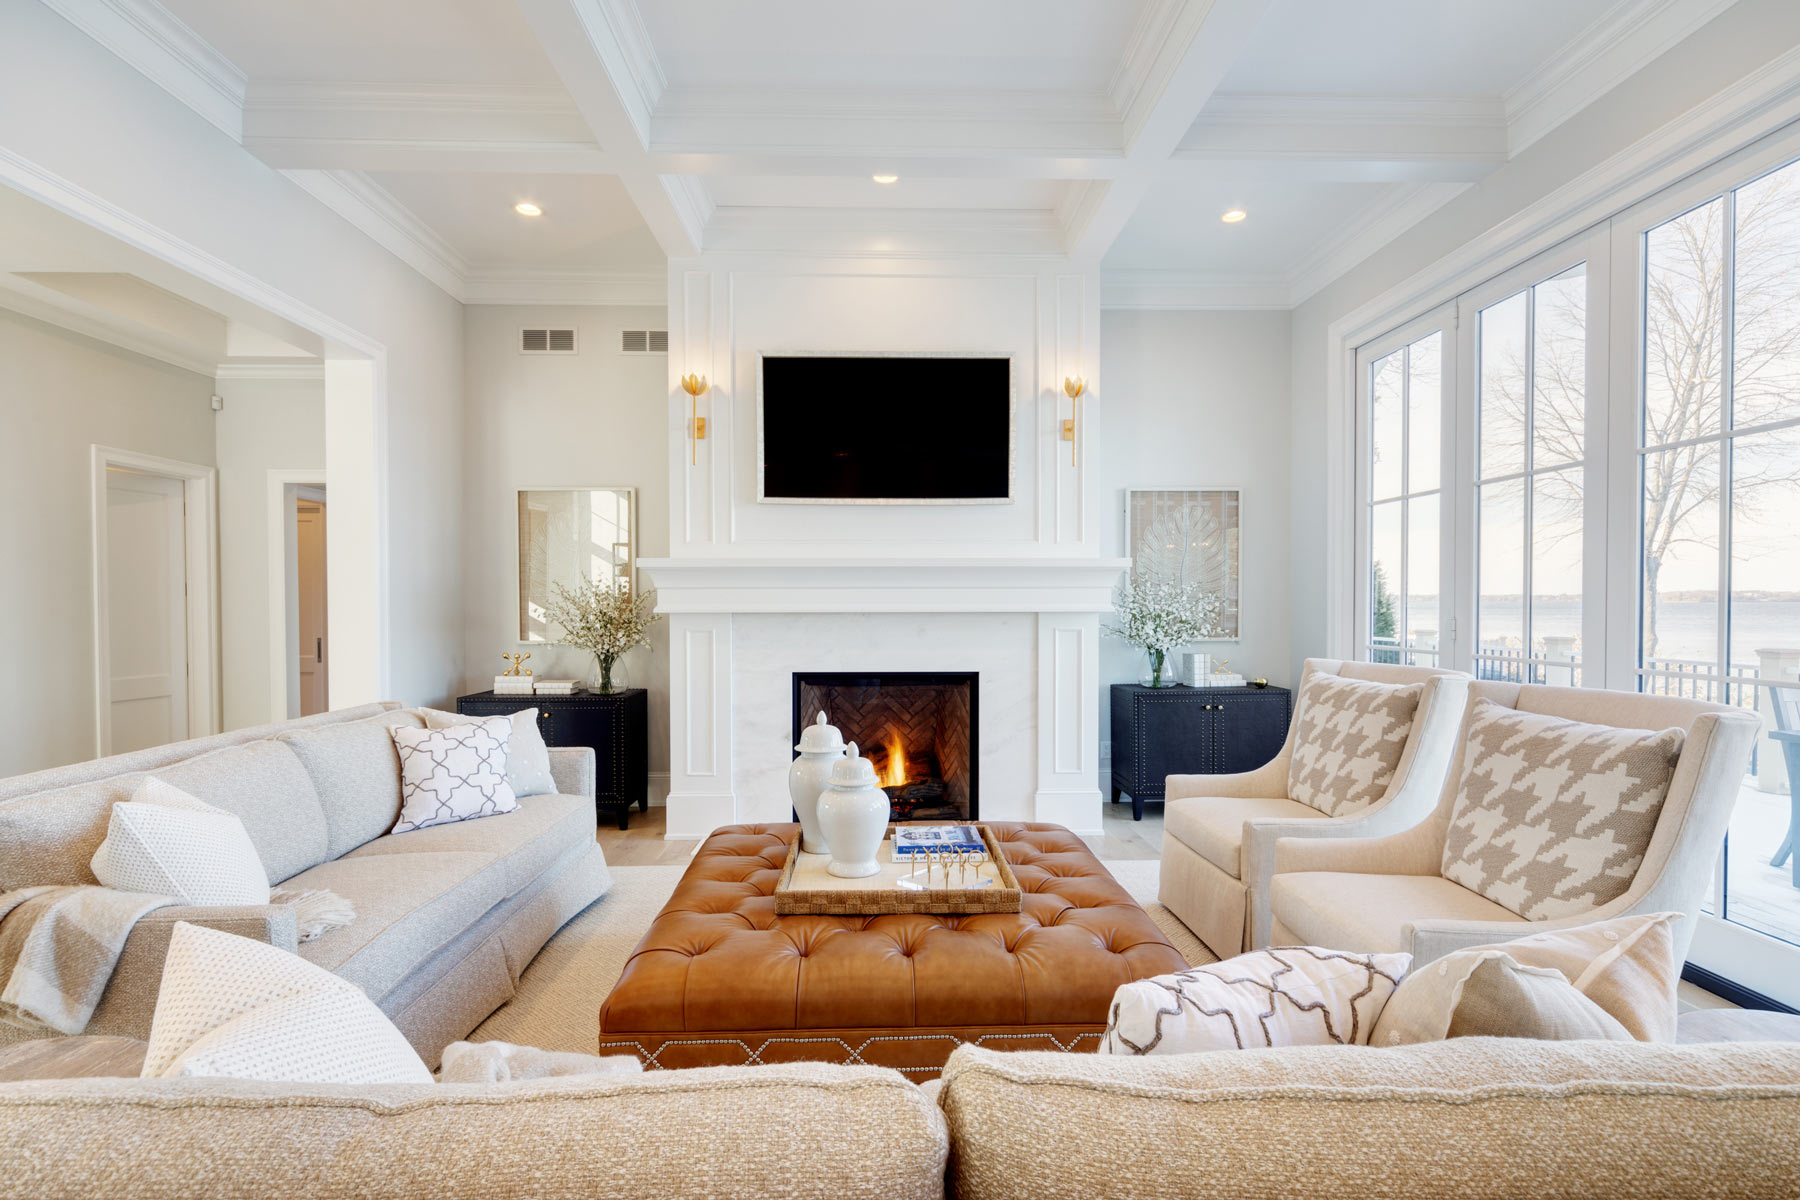 Remodeling and Renovations by Revision, LLC